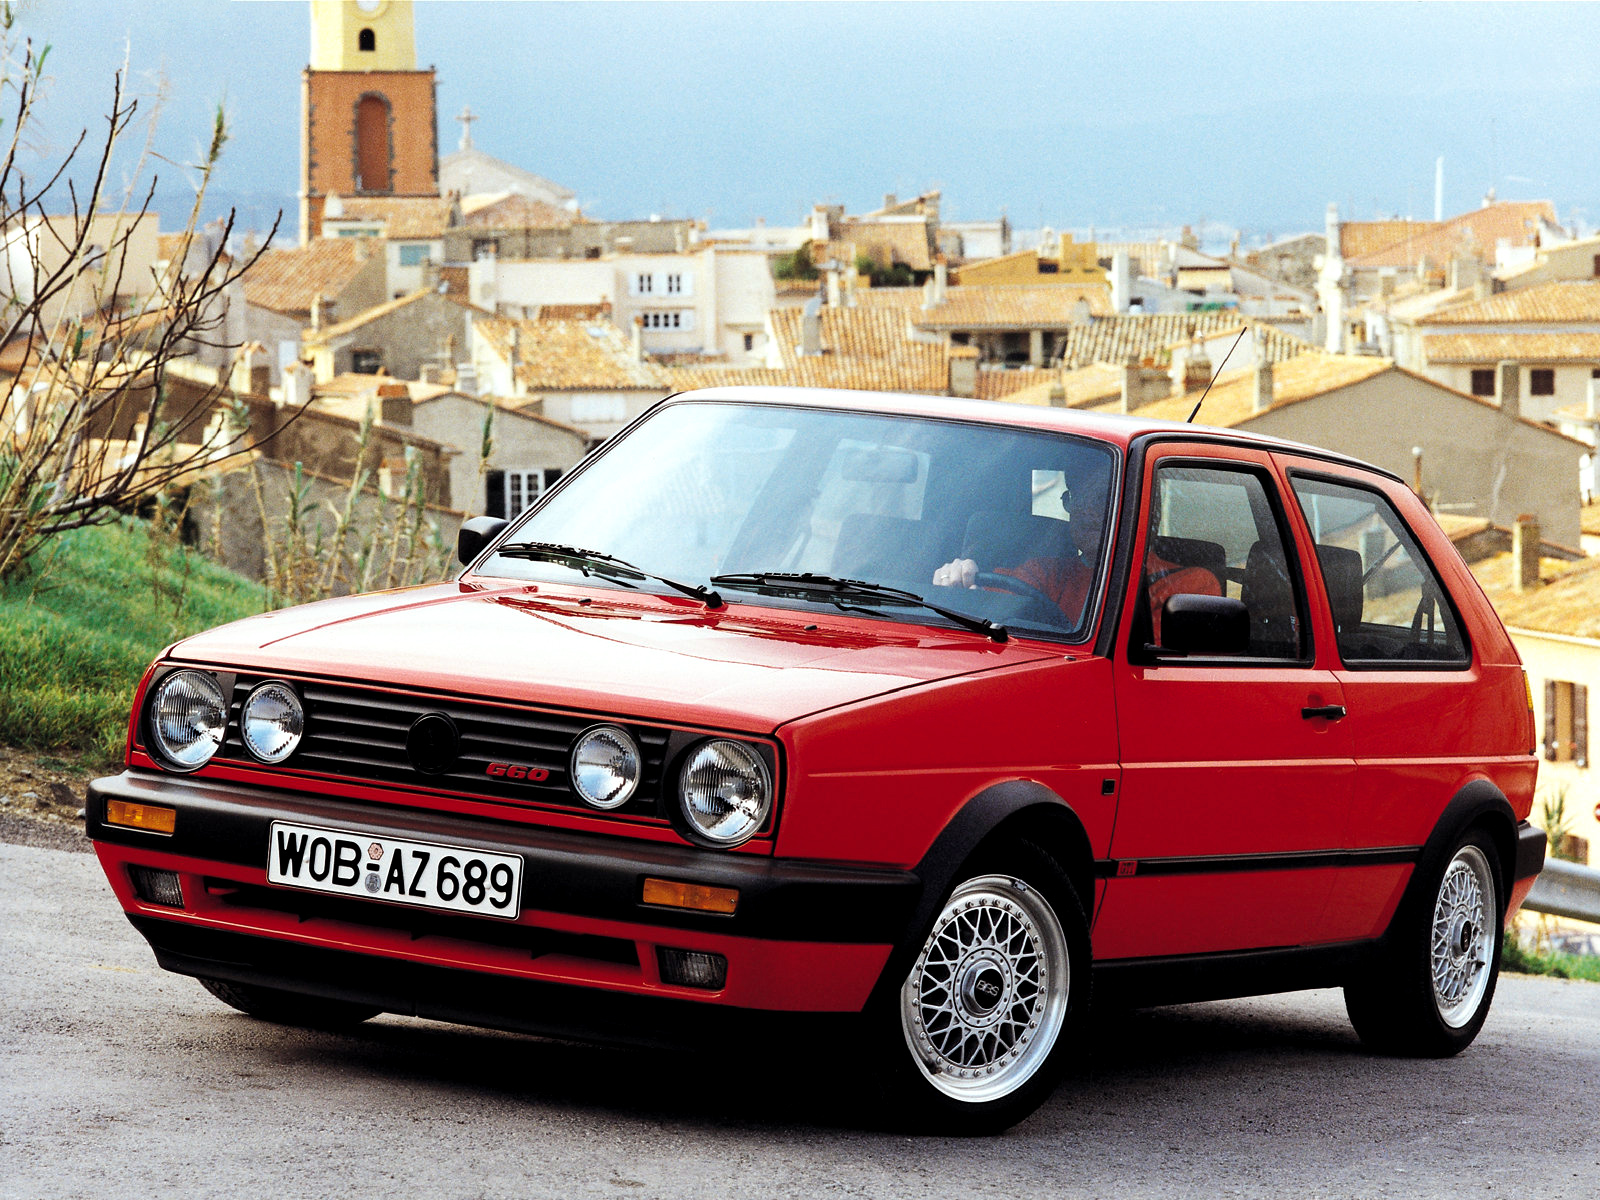 Should I Get A Vw Golf Mkii Or Even The Gti One As My